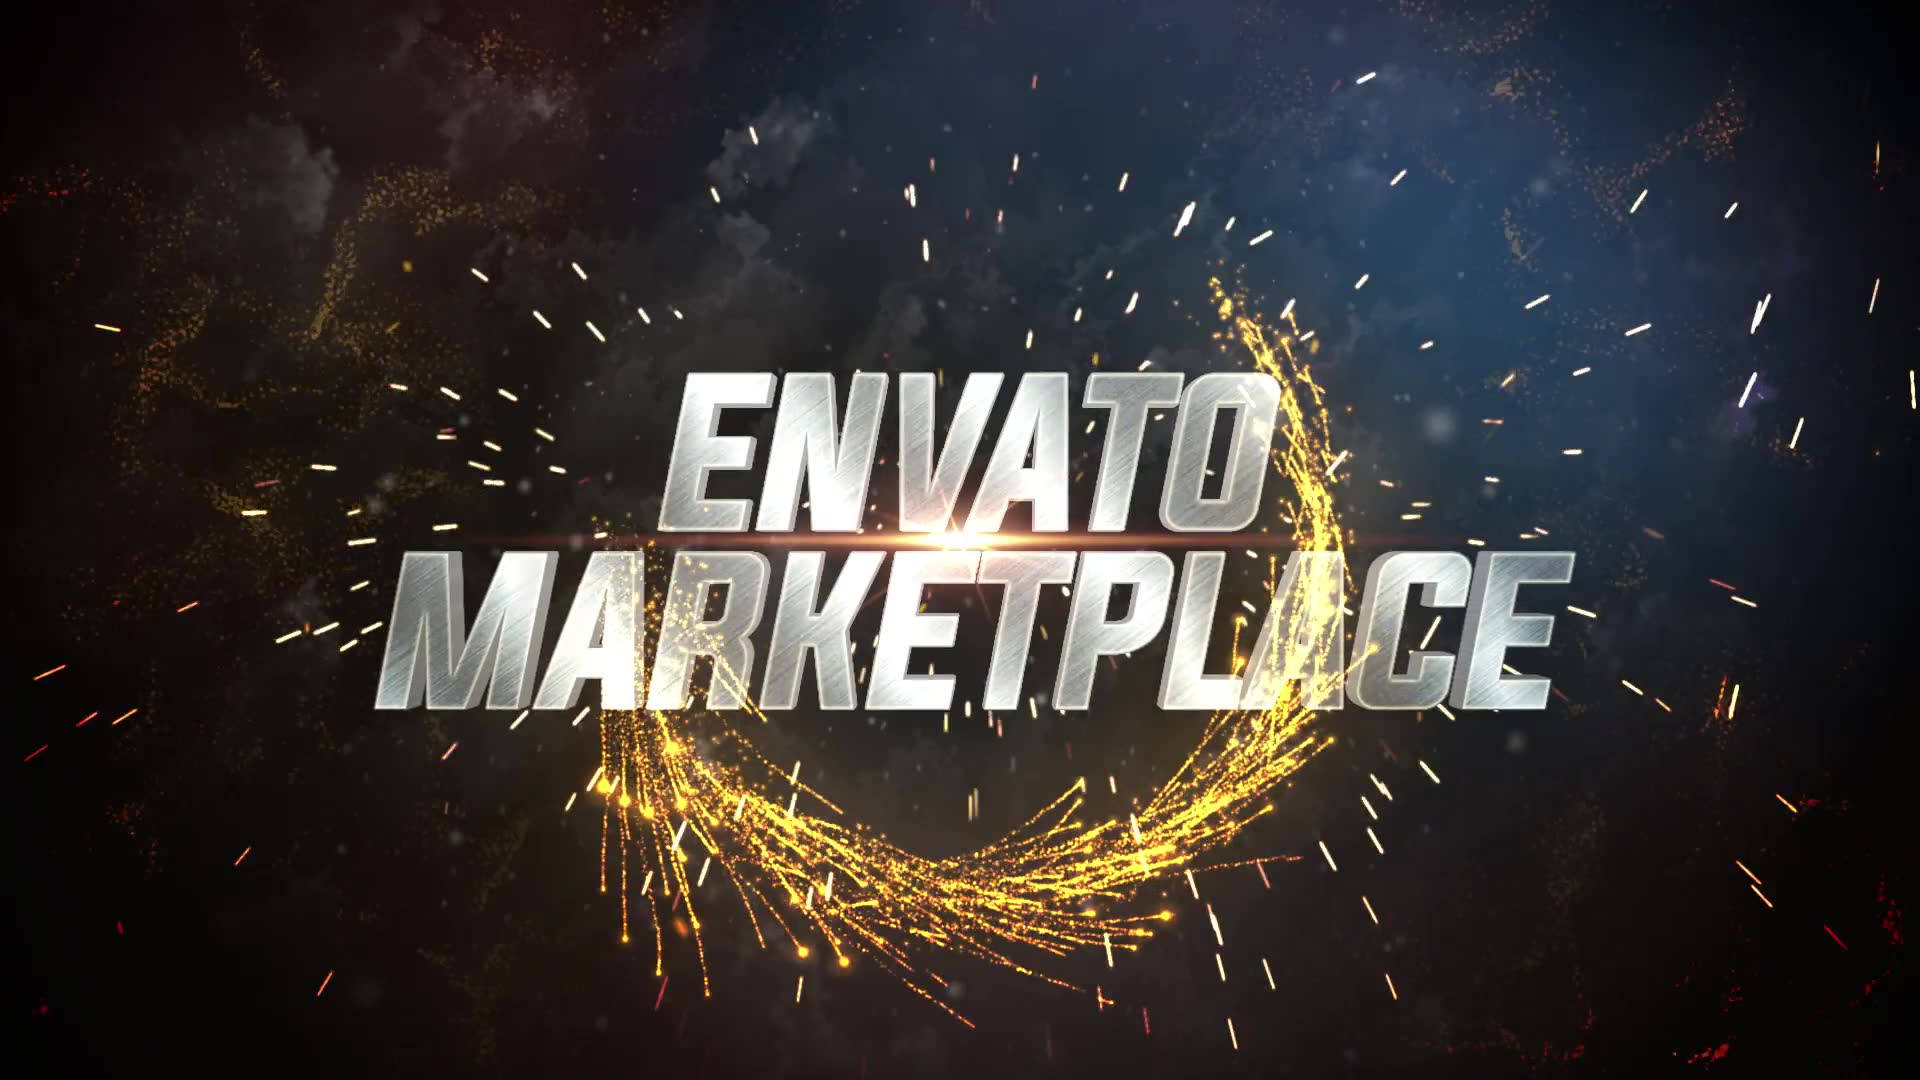 Cinematic Trailer Titles Premiere Pro Videohive 24601841 Premiere Pro Image 6